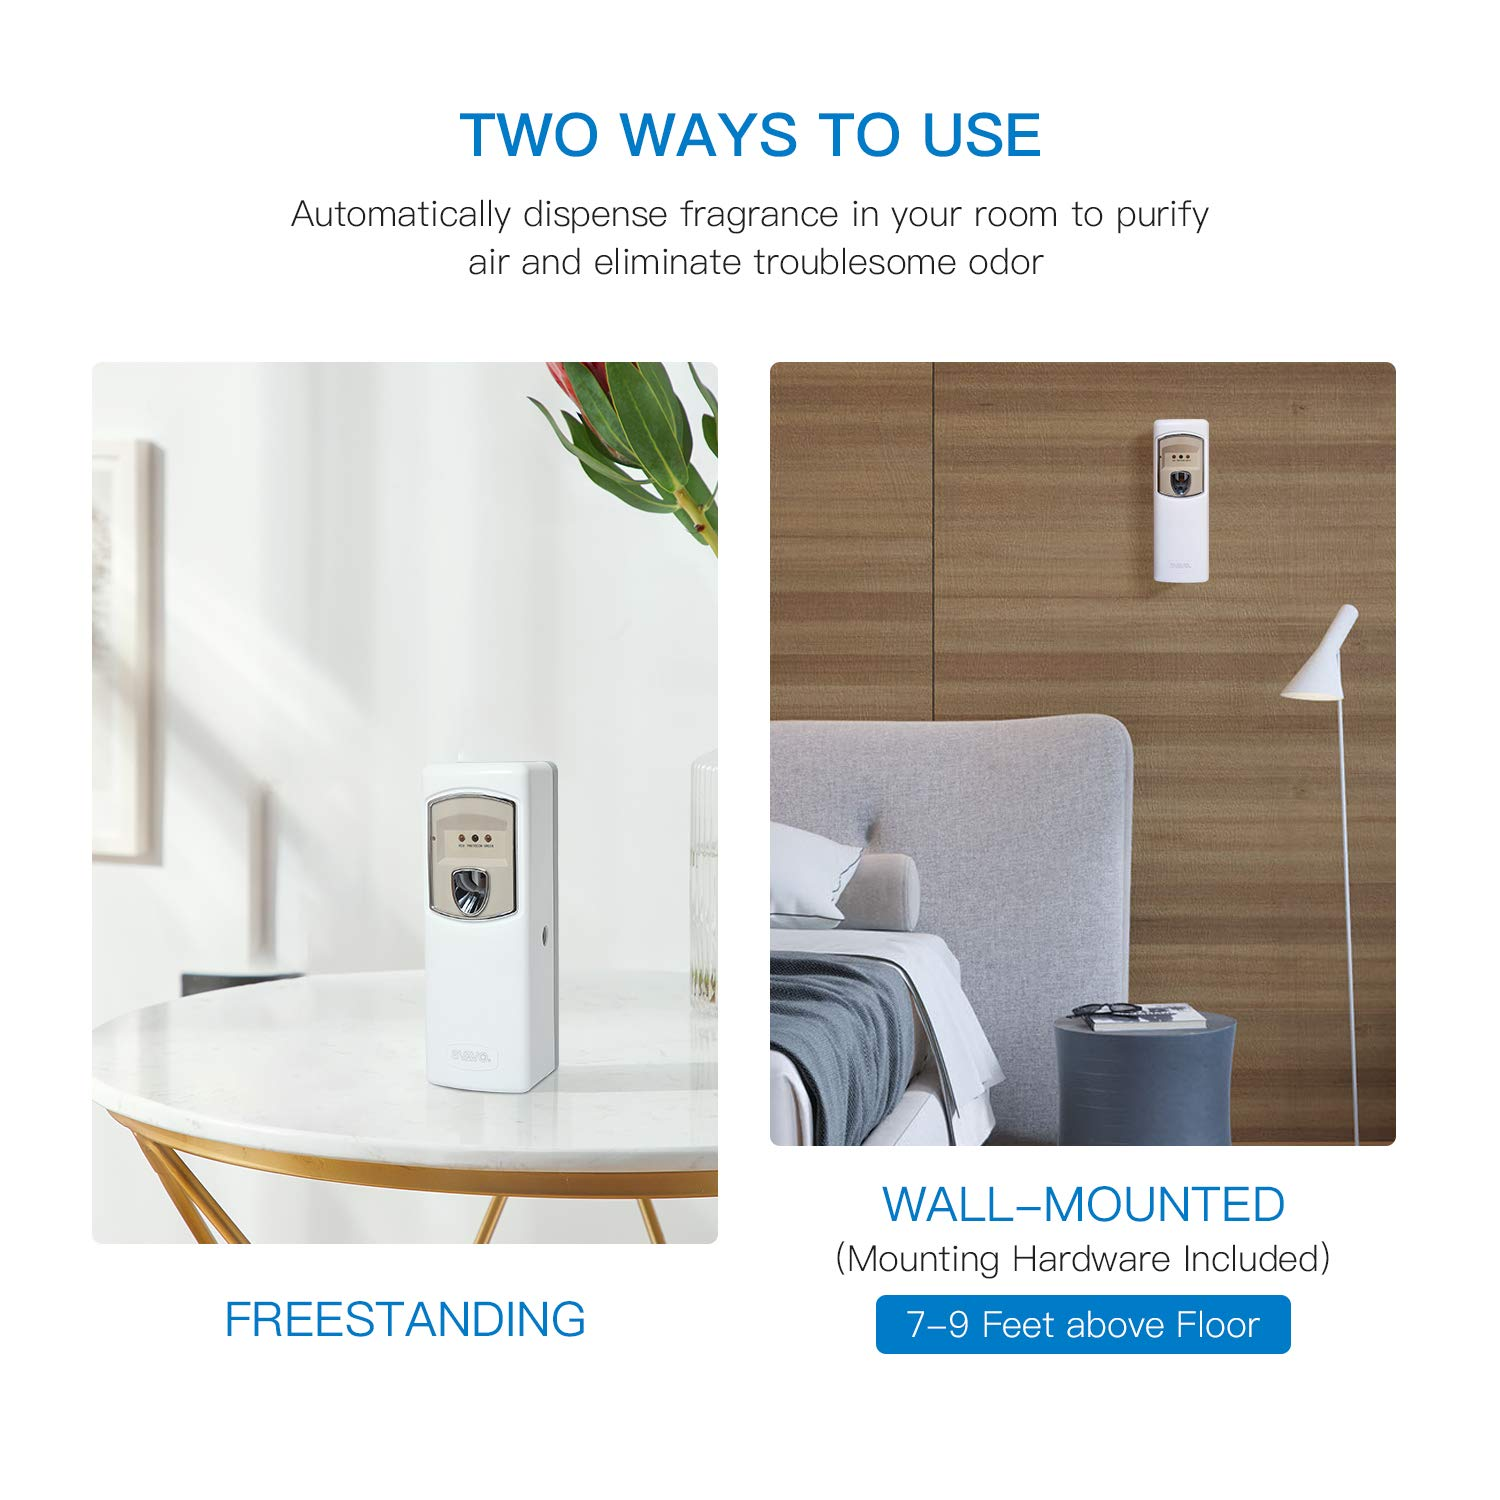 SVAVO Automatic Air Freshener Dispenser - Wall Mounted/Free Standing Auto Aerosol Spray Dispenser Programmable Fragrance Dispenser for Indoor-Bedroom, Hotel, Office, Commercial Place, White by SVAVO (Image #4)